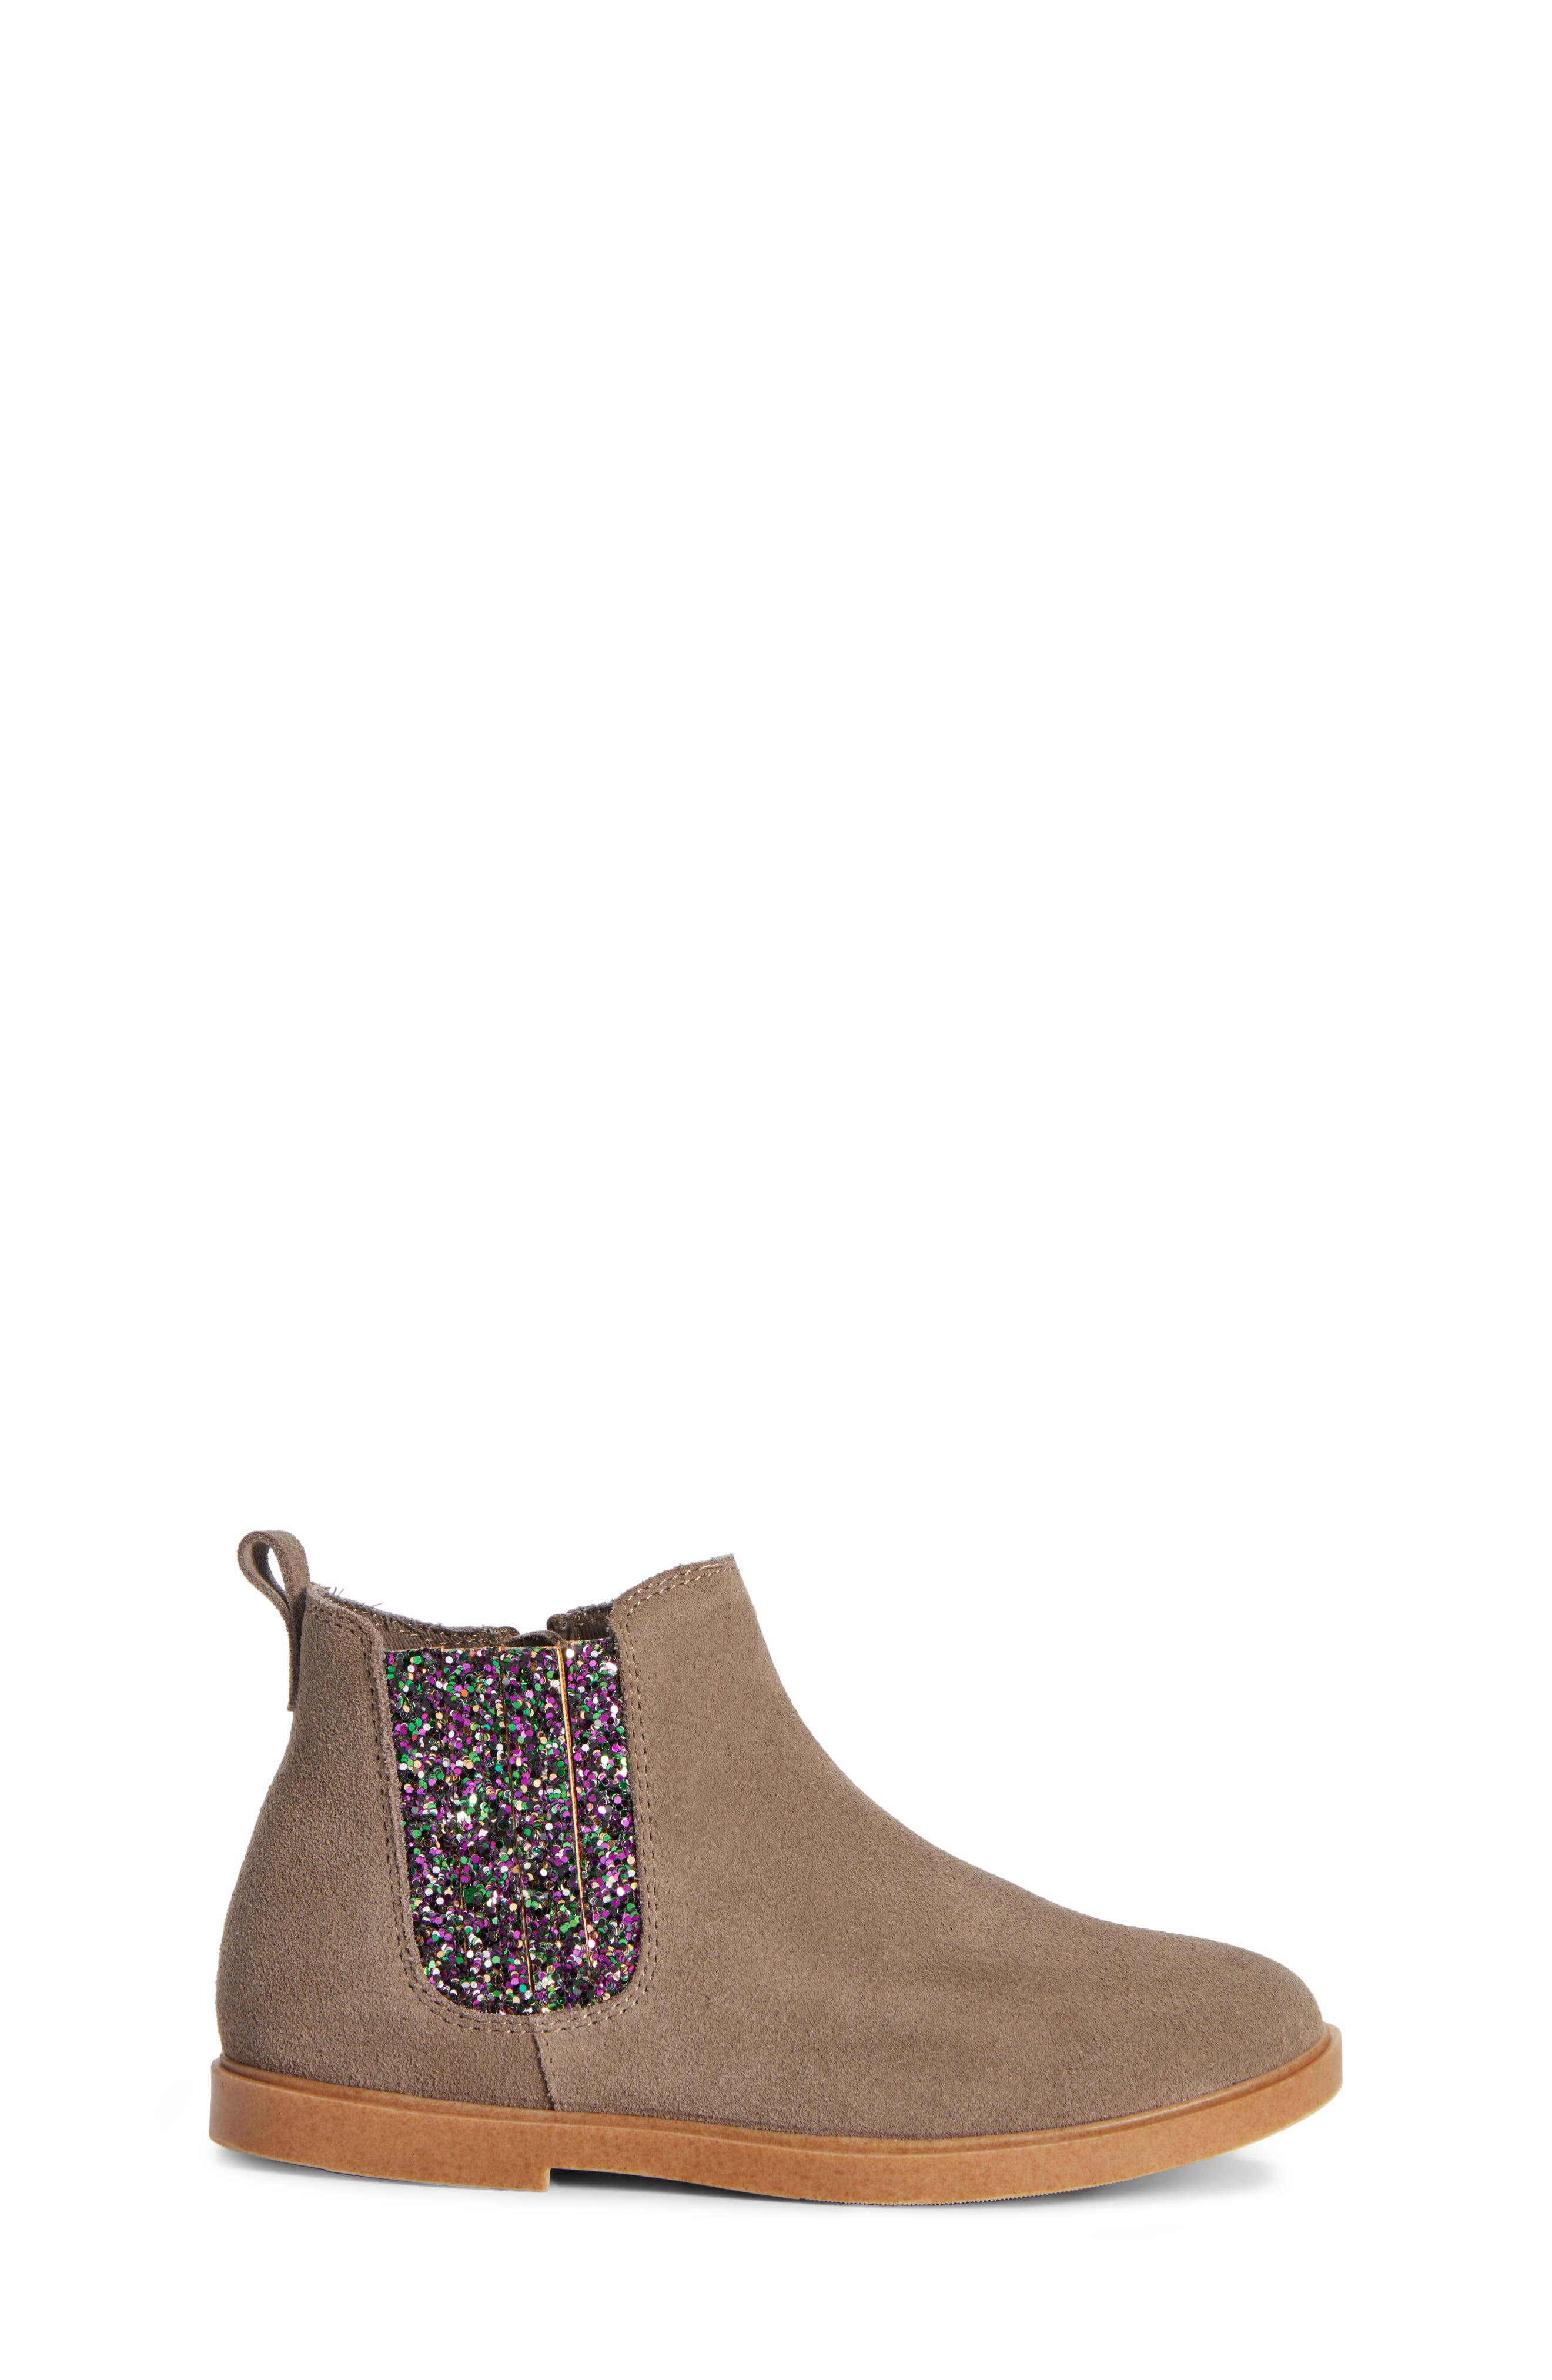 Alice Glitter Chelsea Boot,                             Alternate thumbnail 3, color,                             GREY SUEDE